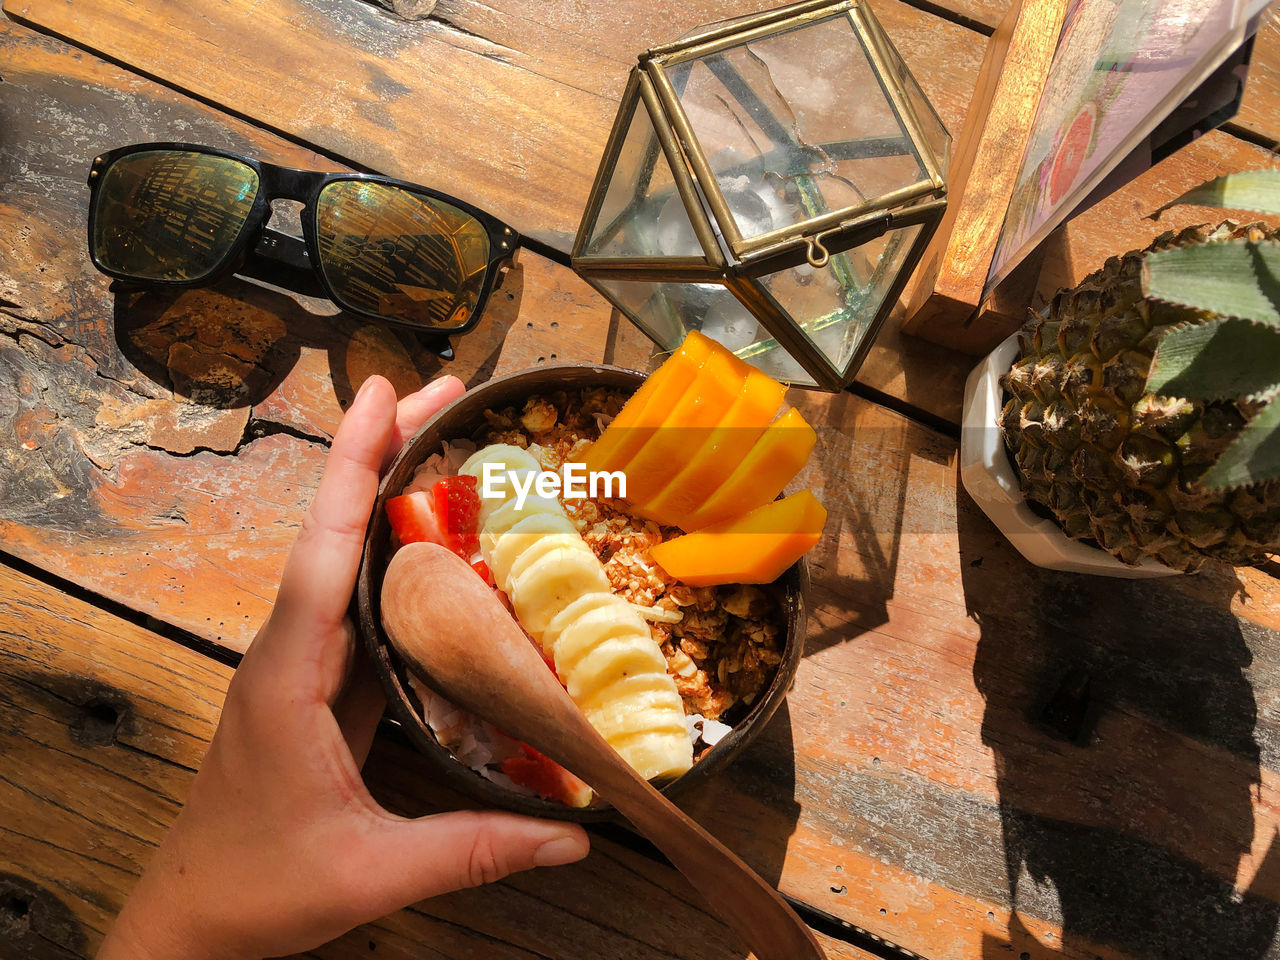 human hand, food and drink, food, hand, one person, real people, holding, freshness, human body part, unrecognizable person, high angle view, lifestyles, ready-to-eat, table, personal perspective, leisure activity, day, unhealthy eating, indoors, finger, snack, temptation